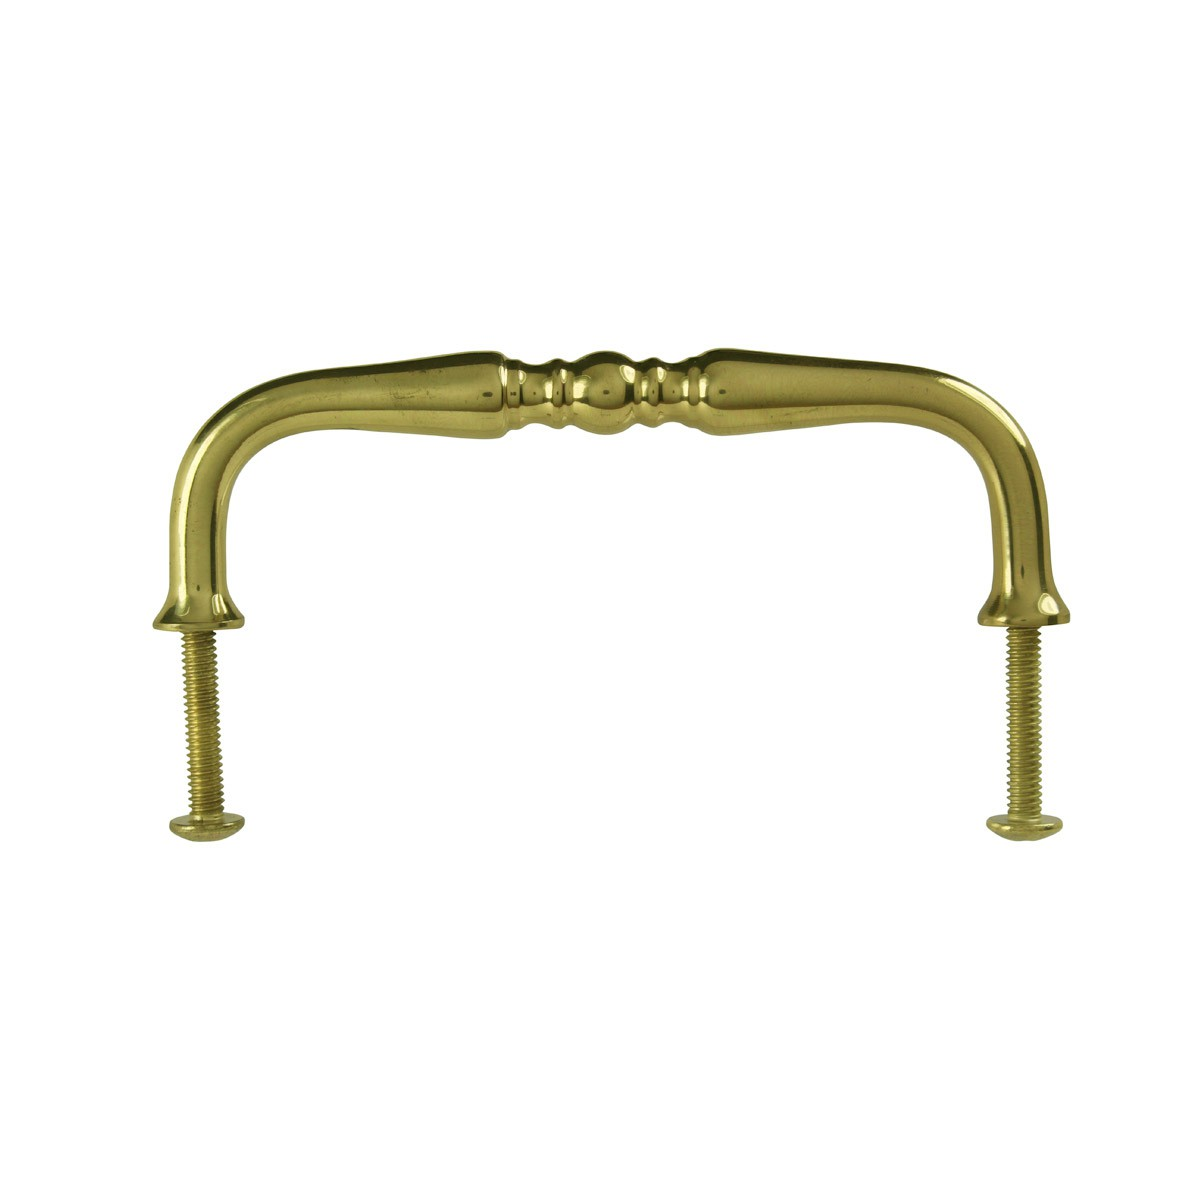 Cabinet  Bail Pull Bright Solid Brass Spooled 3 5/8 Furniture Hardware Cabinet Pull Cabinet Hardware